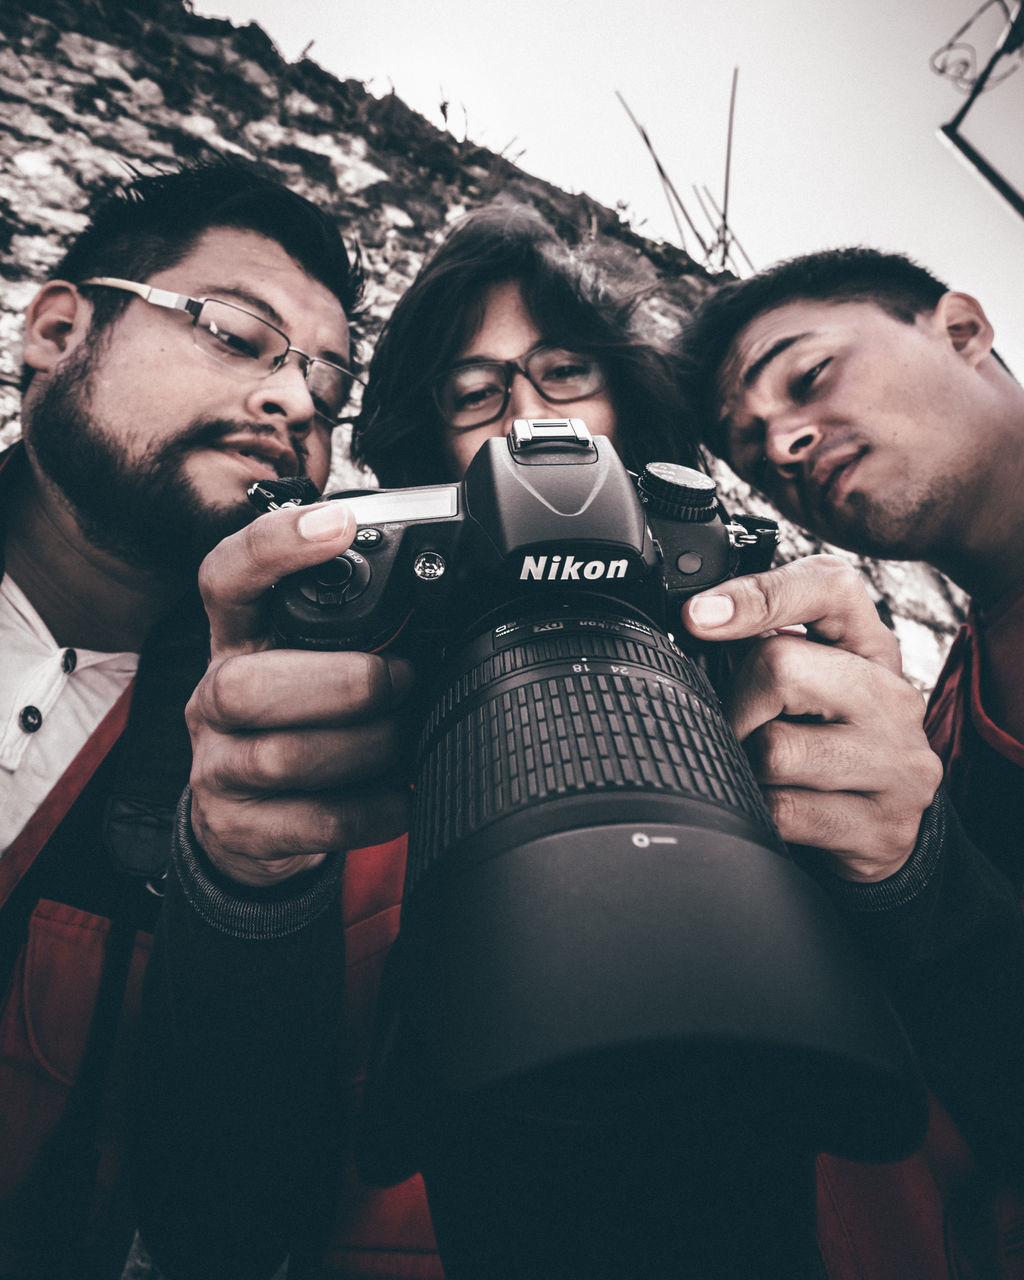 real people, togetherness, young men, men, selfie, photographing, photography themes, outdoors, day, young adult, adult, adults only, people